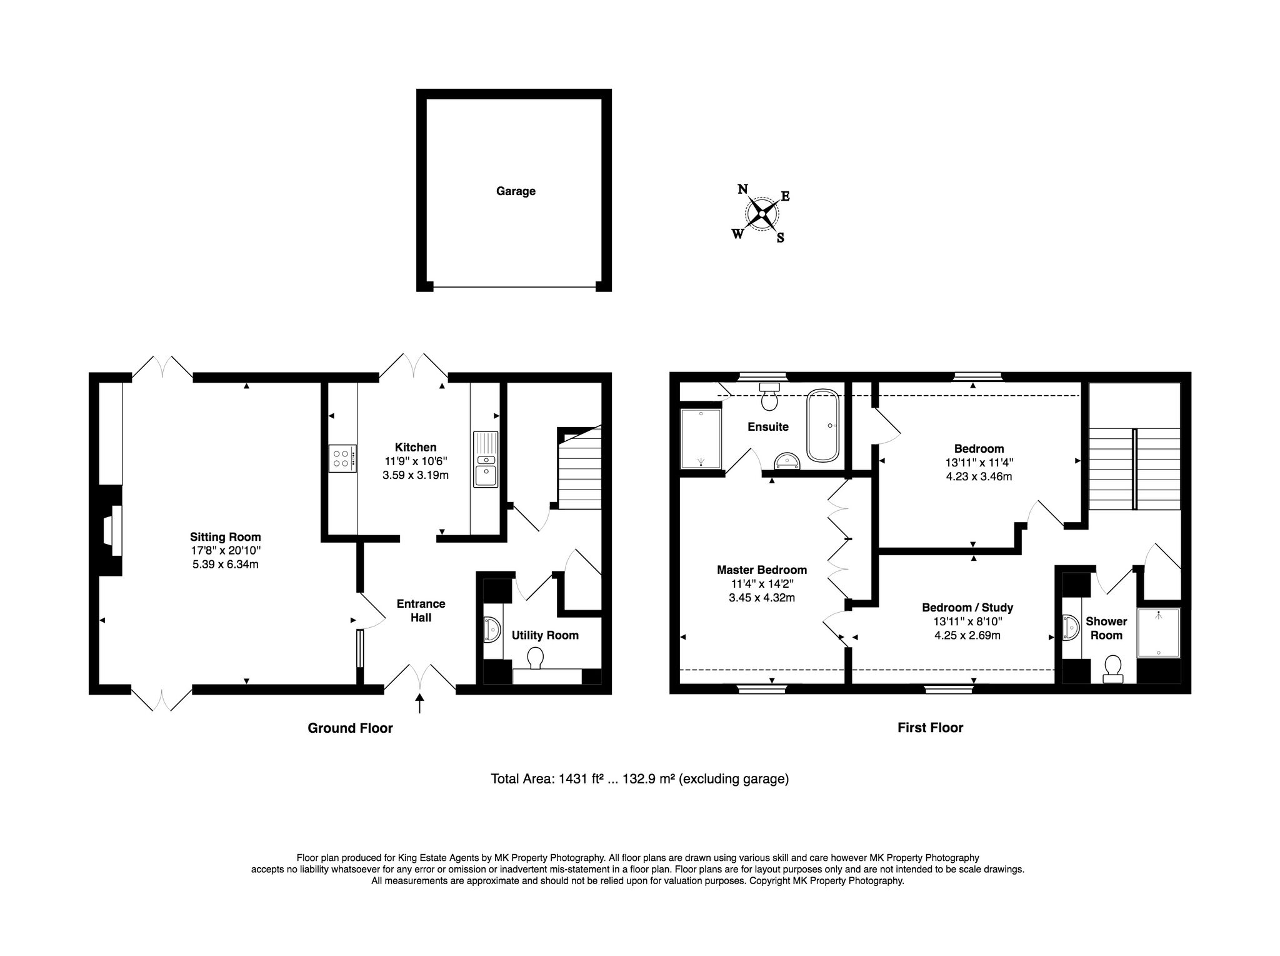 Floorplan for Gayhurst Court Mews, Gayhurst, Milton Keynes, Buckinghamshire, MK16 8LG